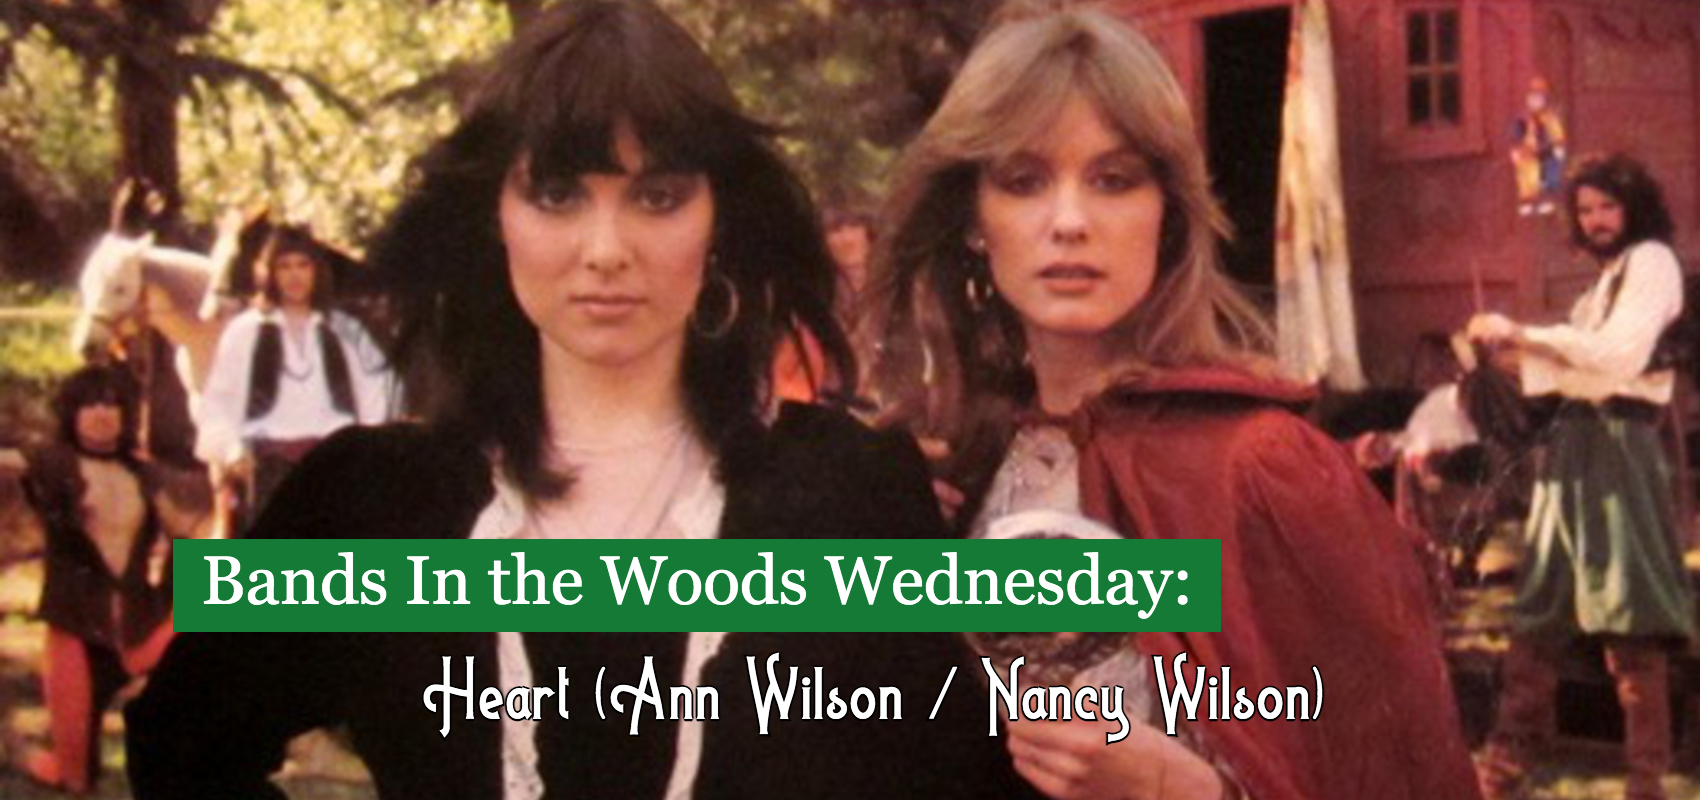 Ann Wilson and Nancy Wilson of Heart stand outdoors in front of a Gypsy caravan